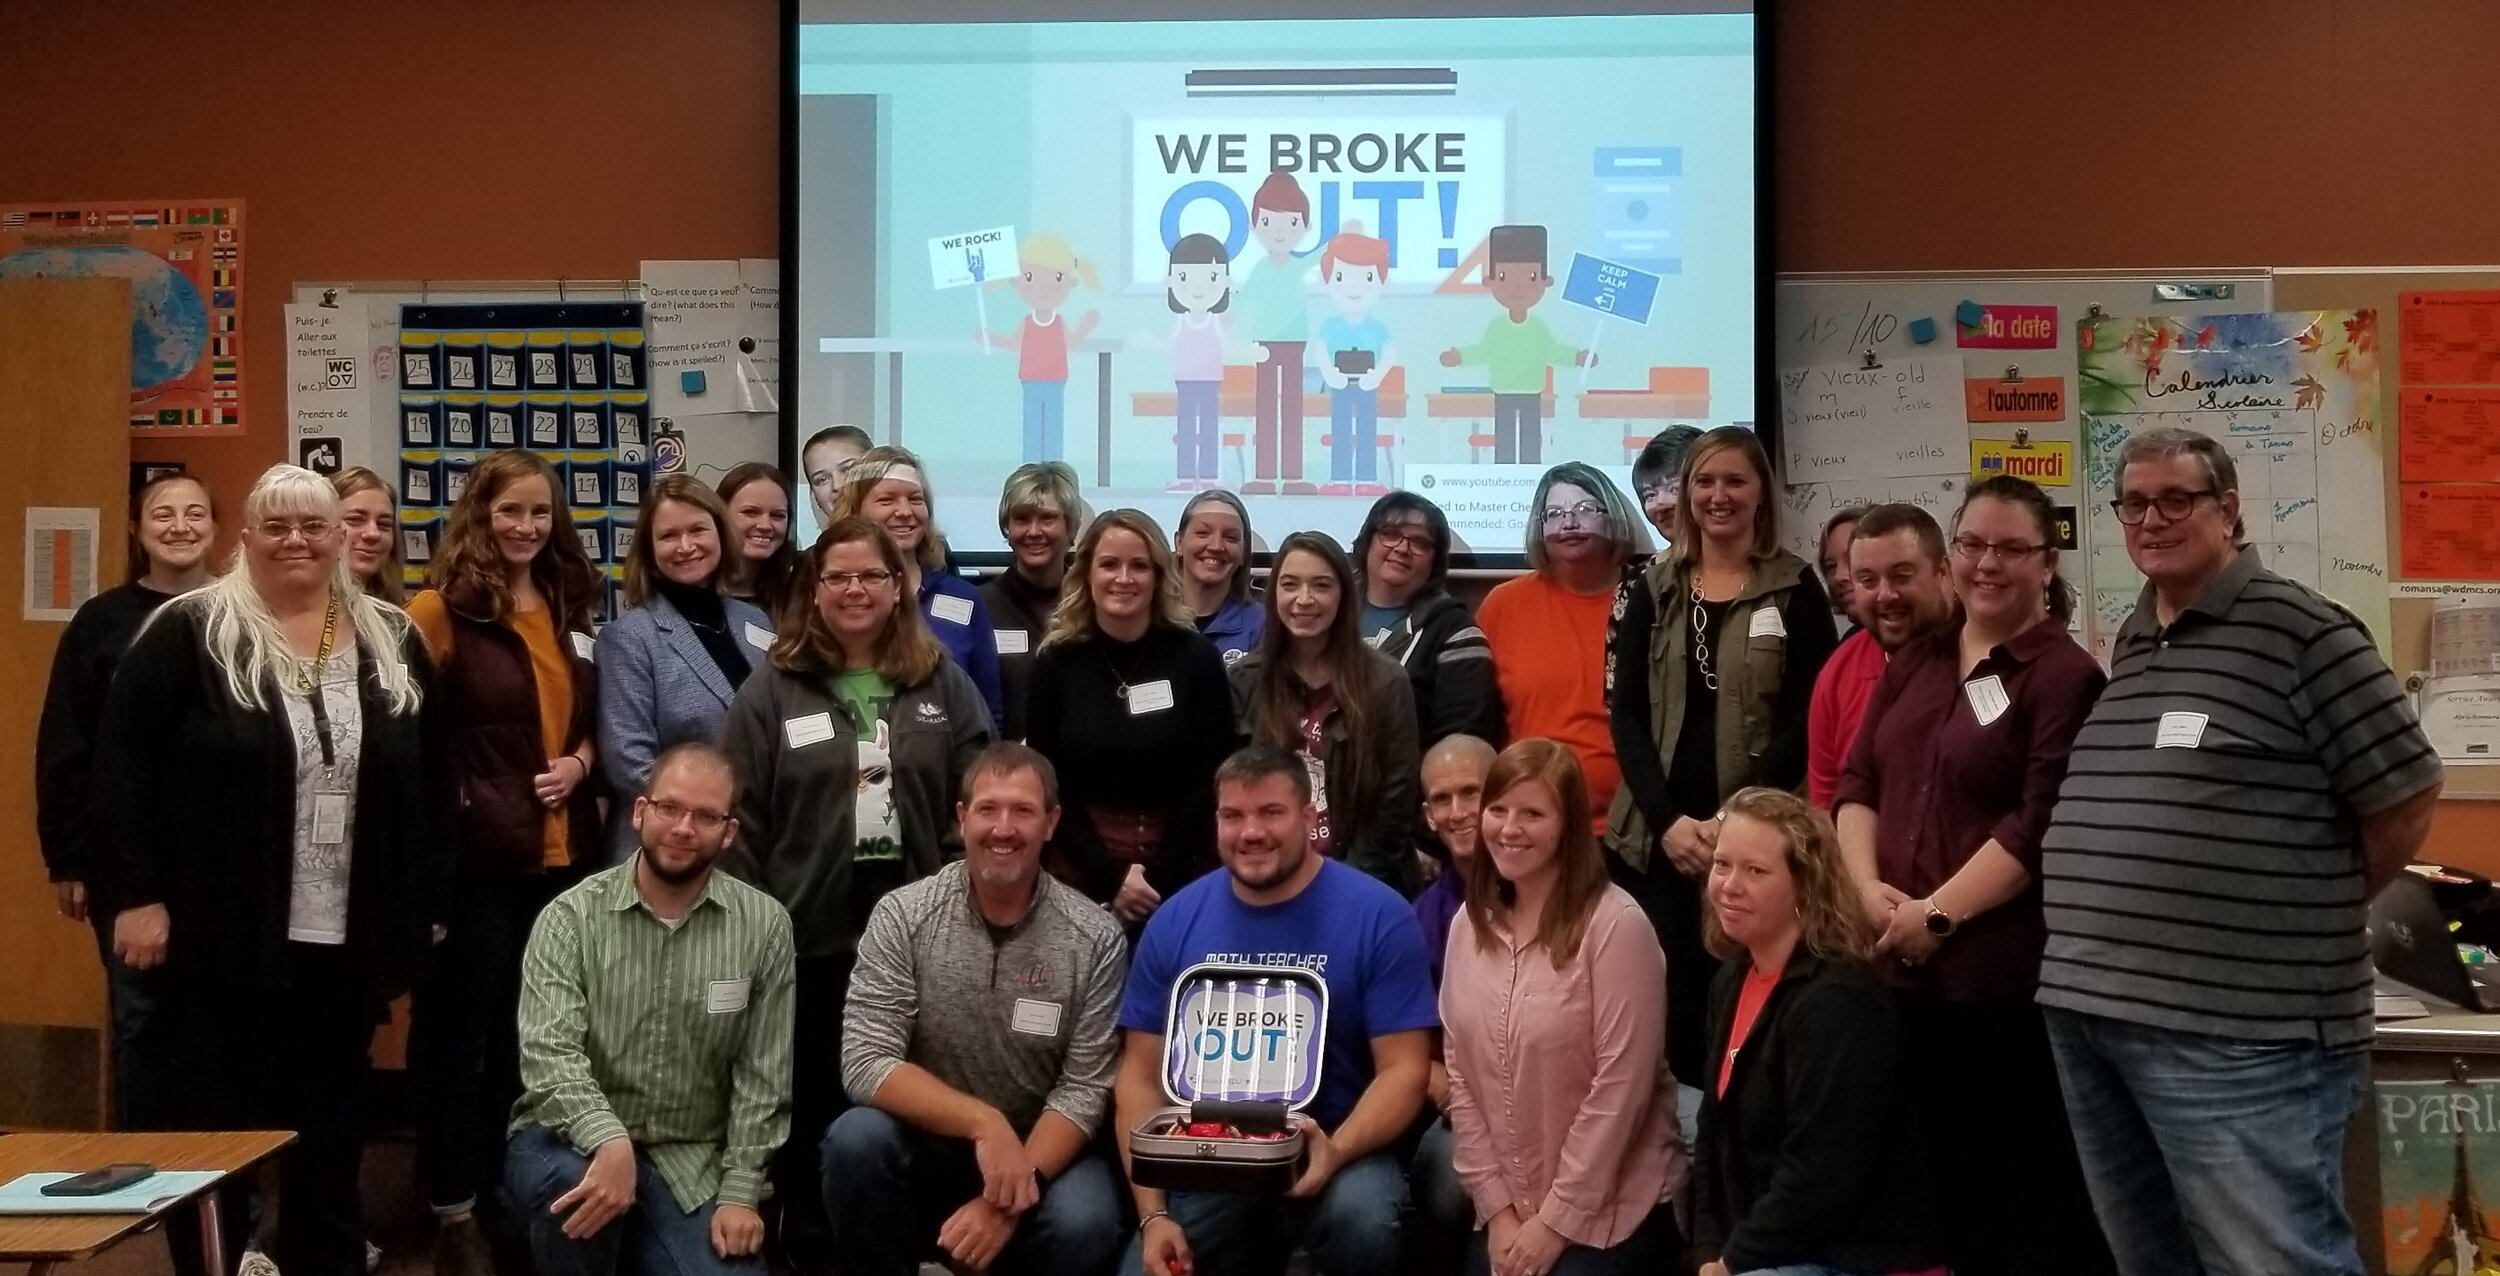 During the conference, participants played BreakOut Linear vs. Avengers where the teachers had to solve a puzzle and unlock 5 padlocks to break out. They were able to break out with 6 minutes left. Games can be found at  https://platform.breakoutedu.com/ .